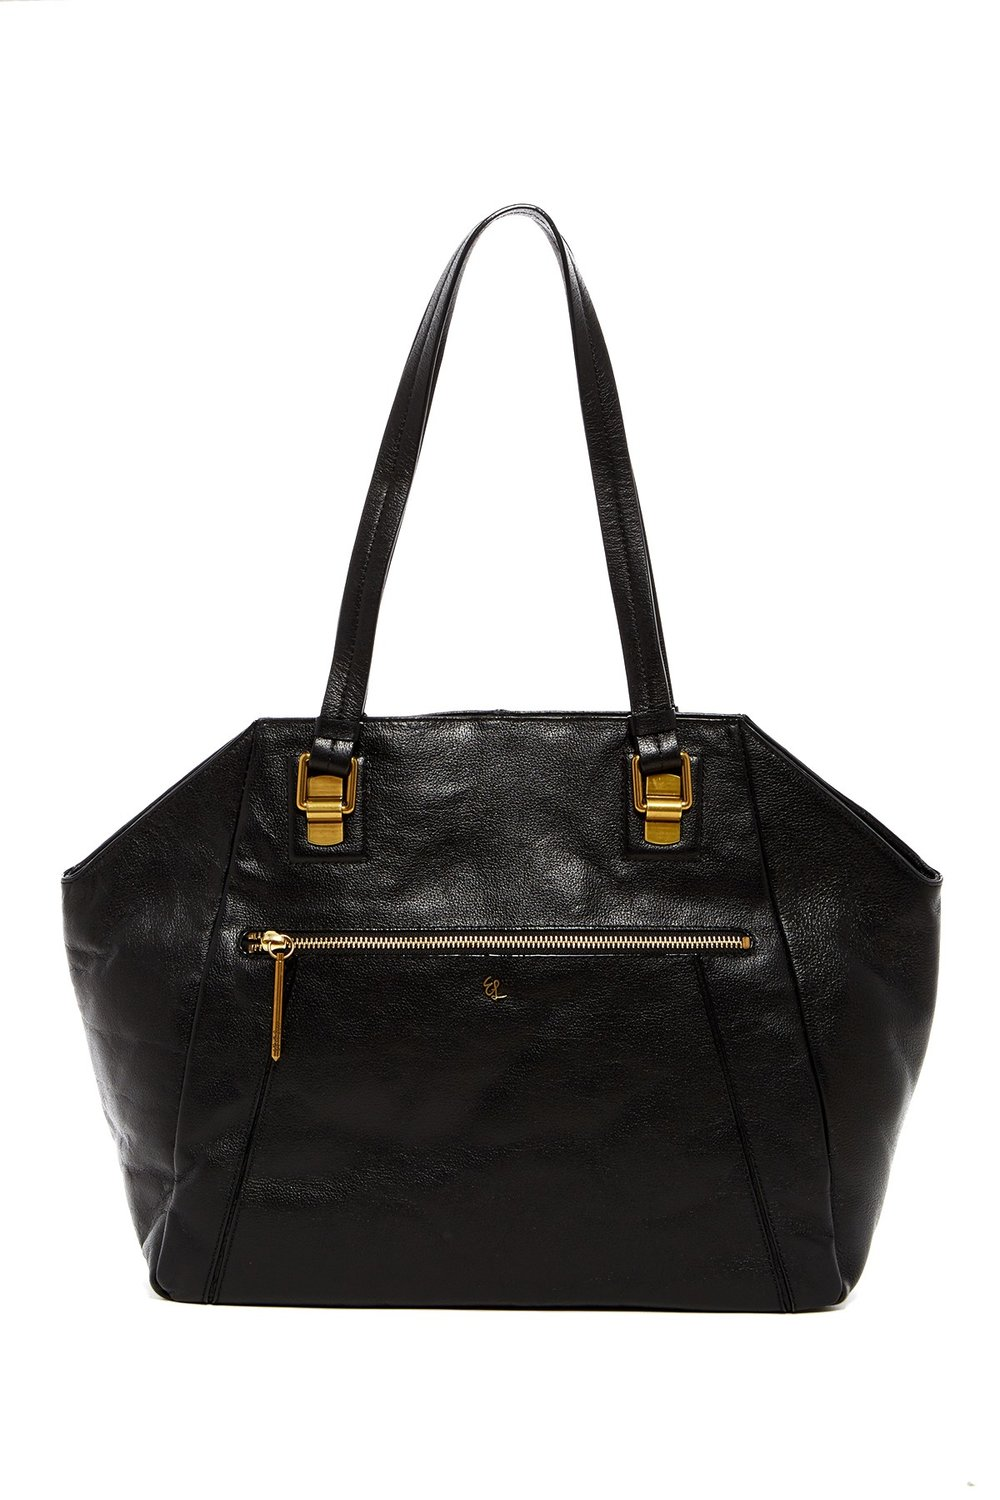 Elliott LuccaFaro Leather Shoulder Tote. Available in brown, black. Nordstrom Rack. Was: $198. Now: $99.